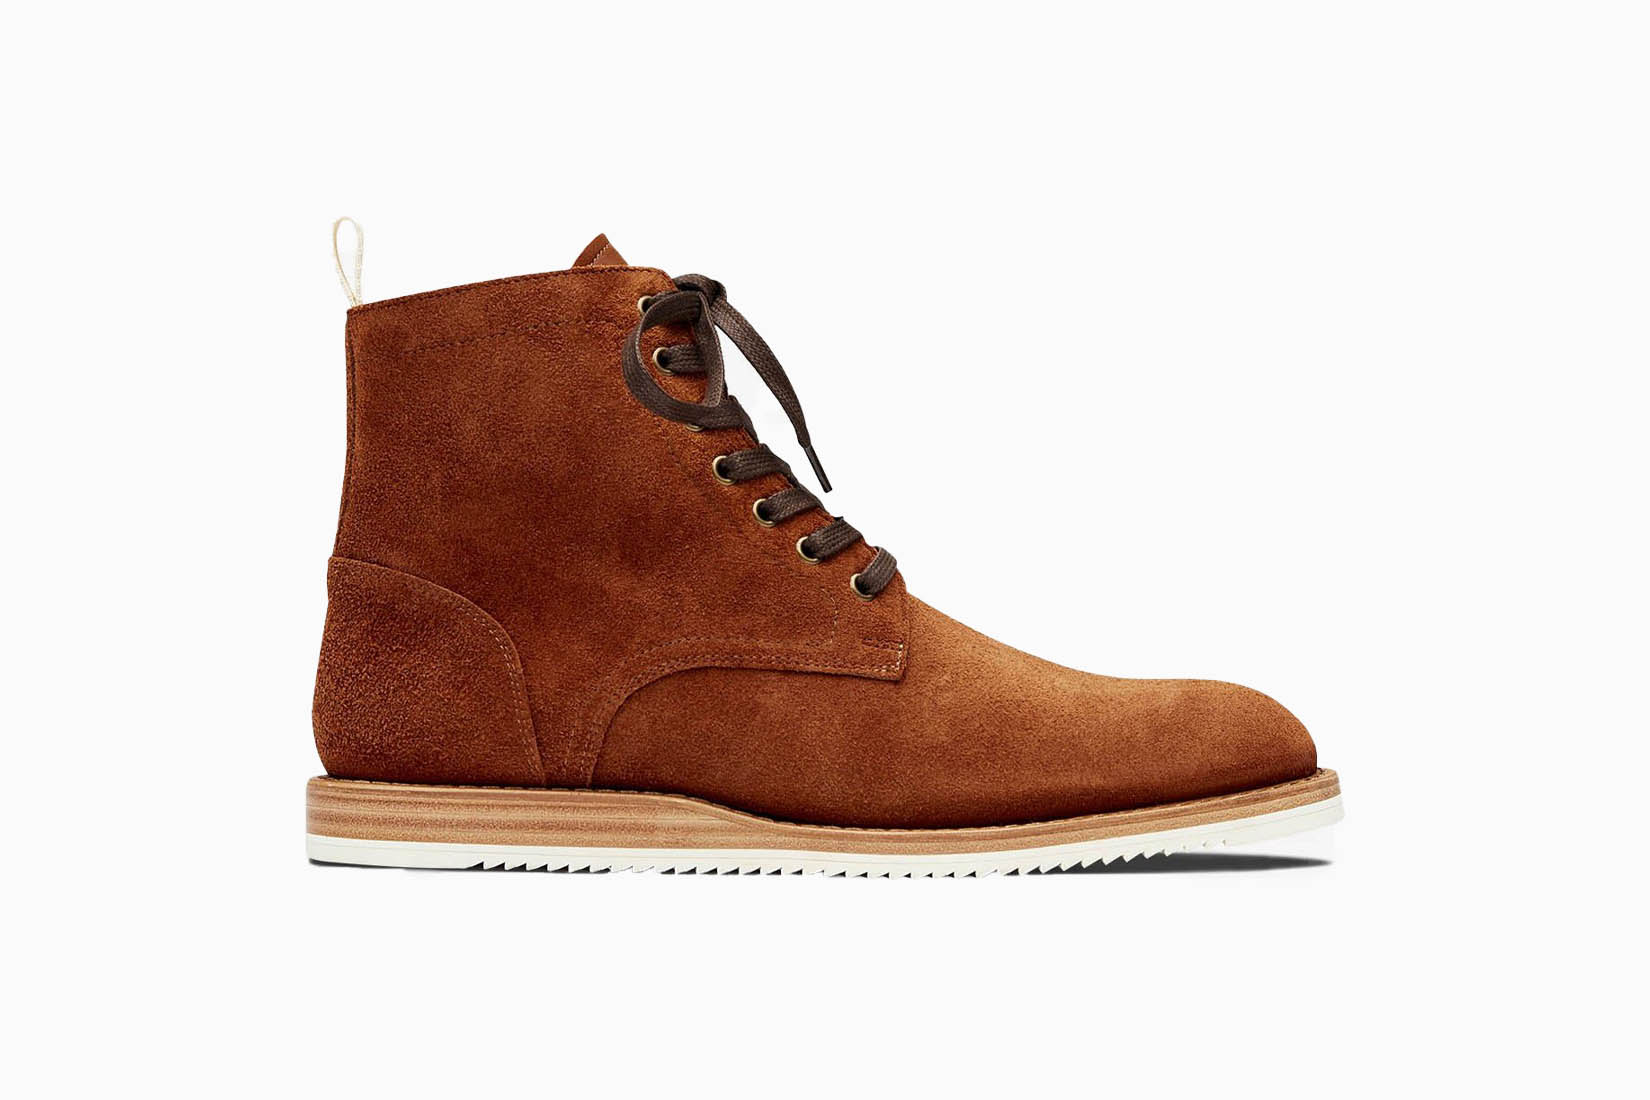 best casual shoes men oliver cabell sb 2 review Luxe Digital